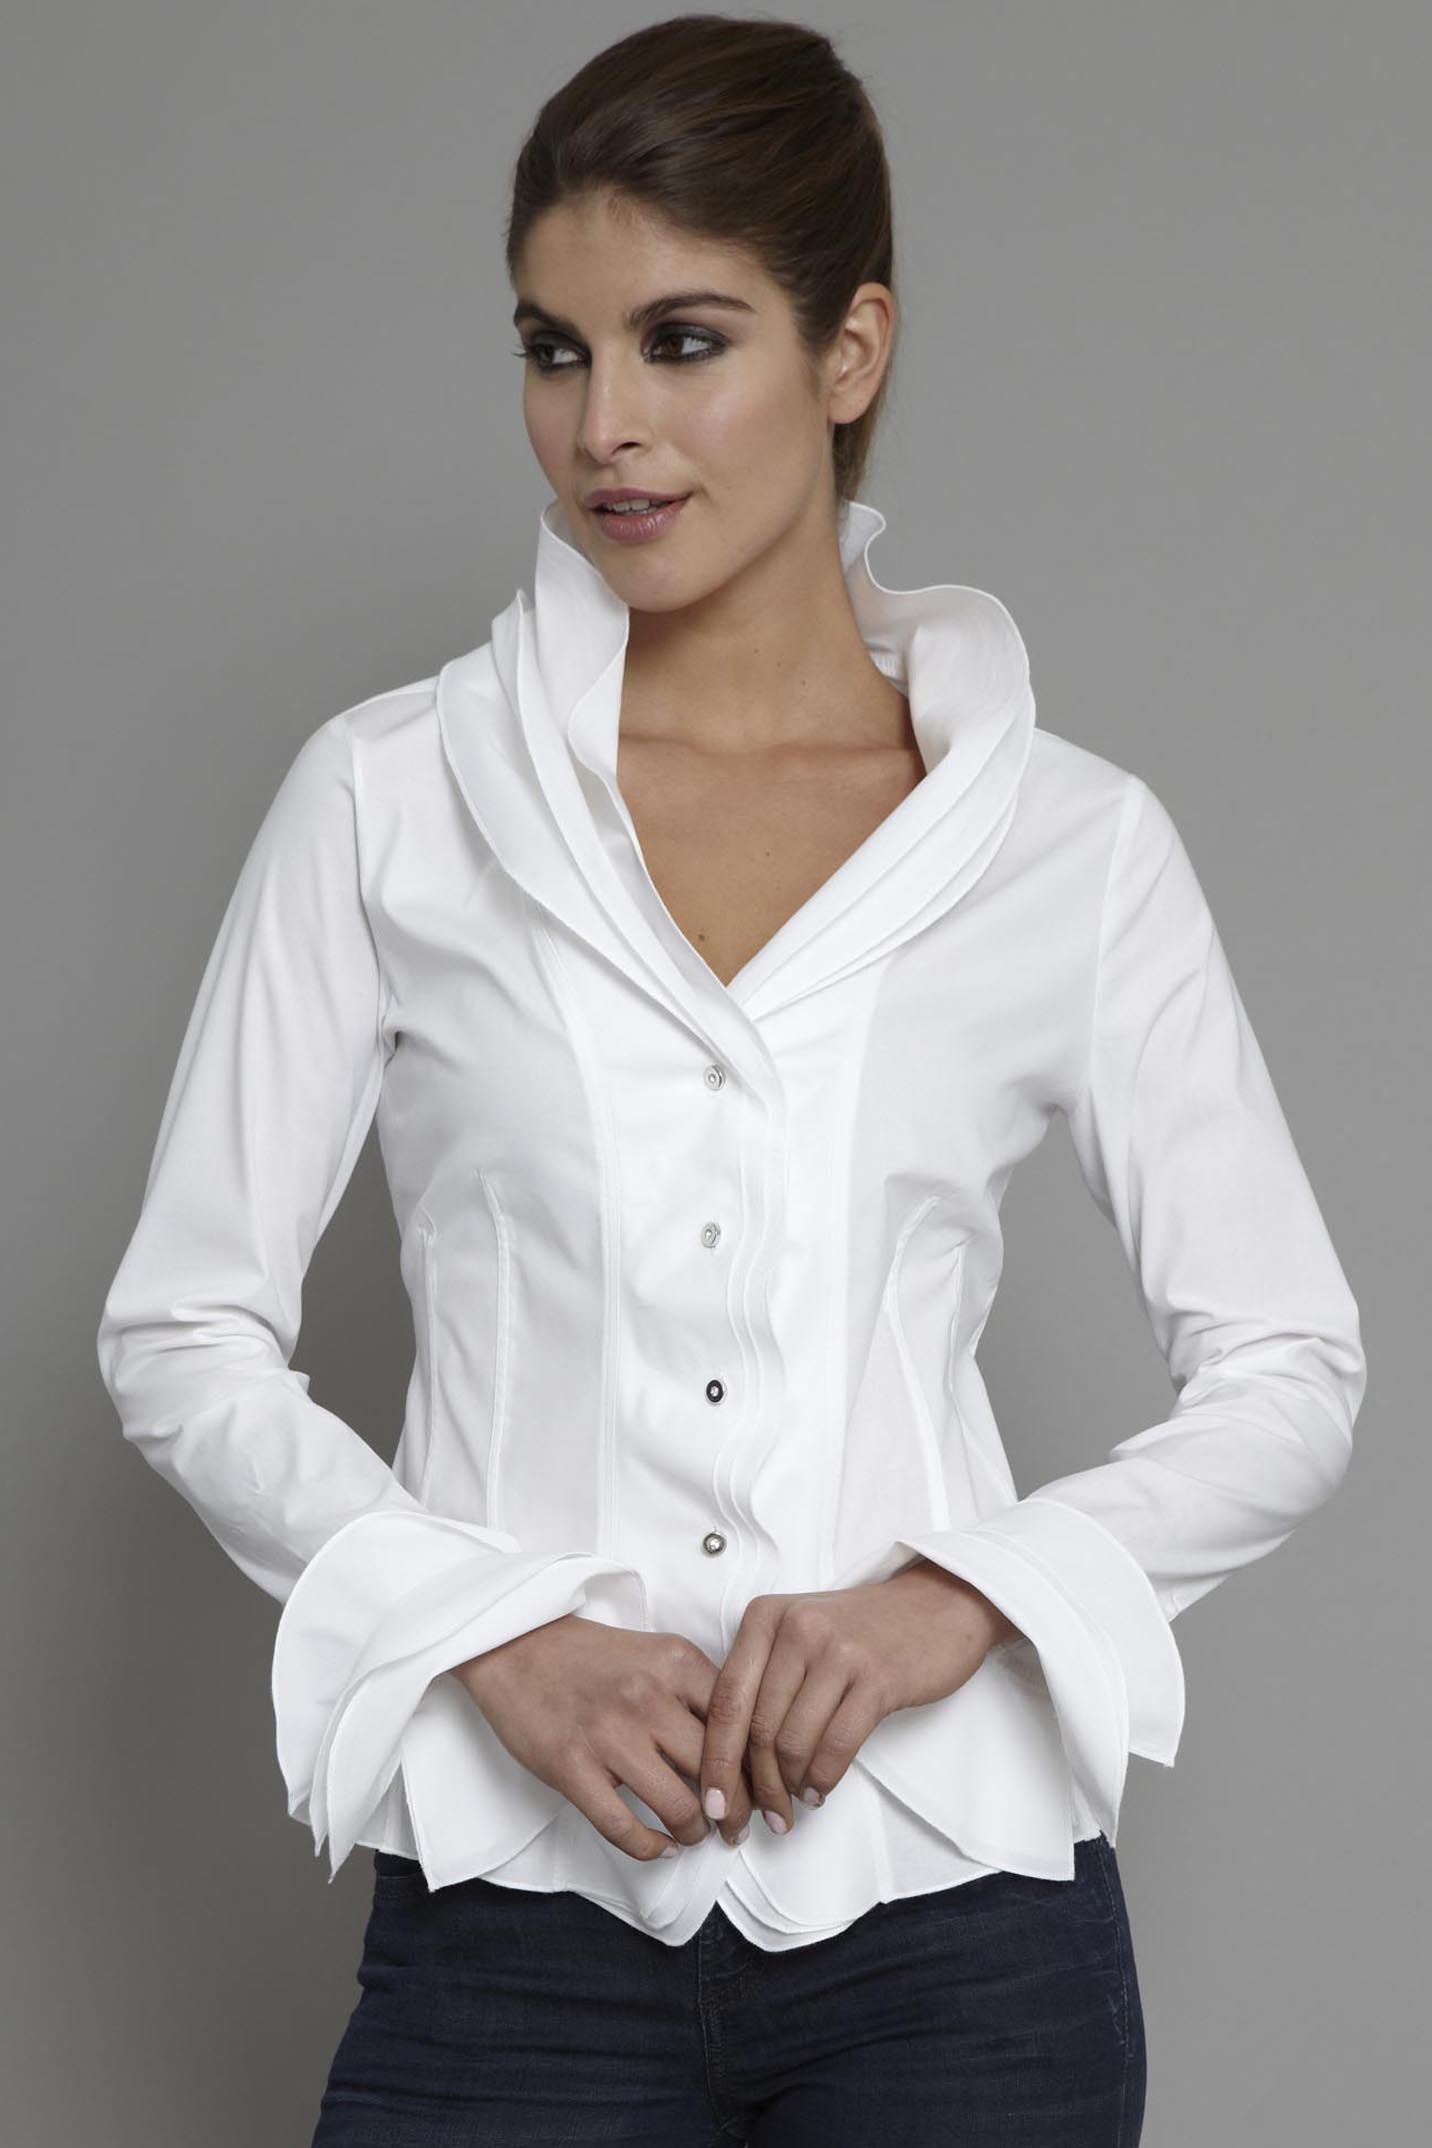 Free shipping BOTH ways on Shirts & Tops, White, Women, from our vast selection of styles. Fast delivery, and 24/7/ real-person service with a smile. Click or call